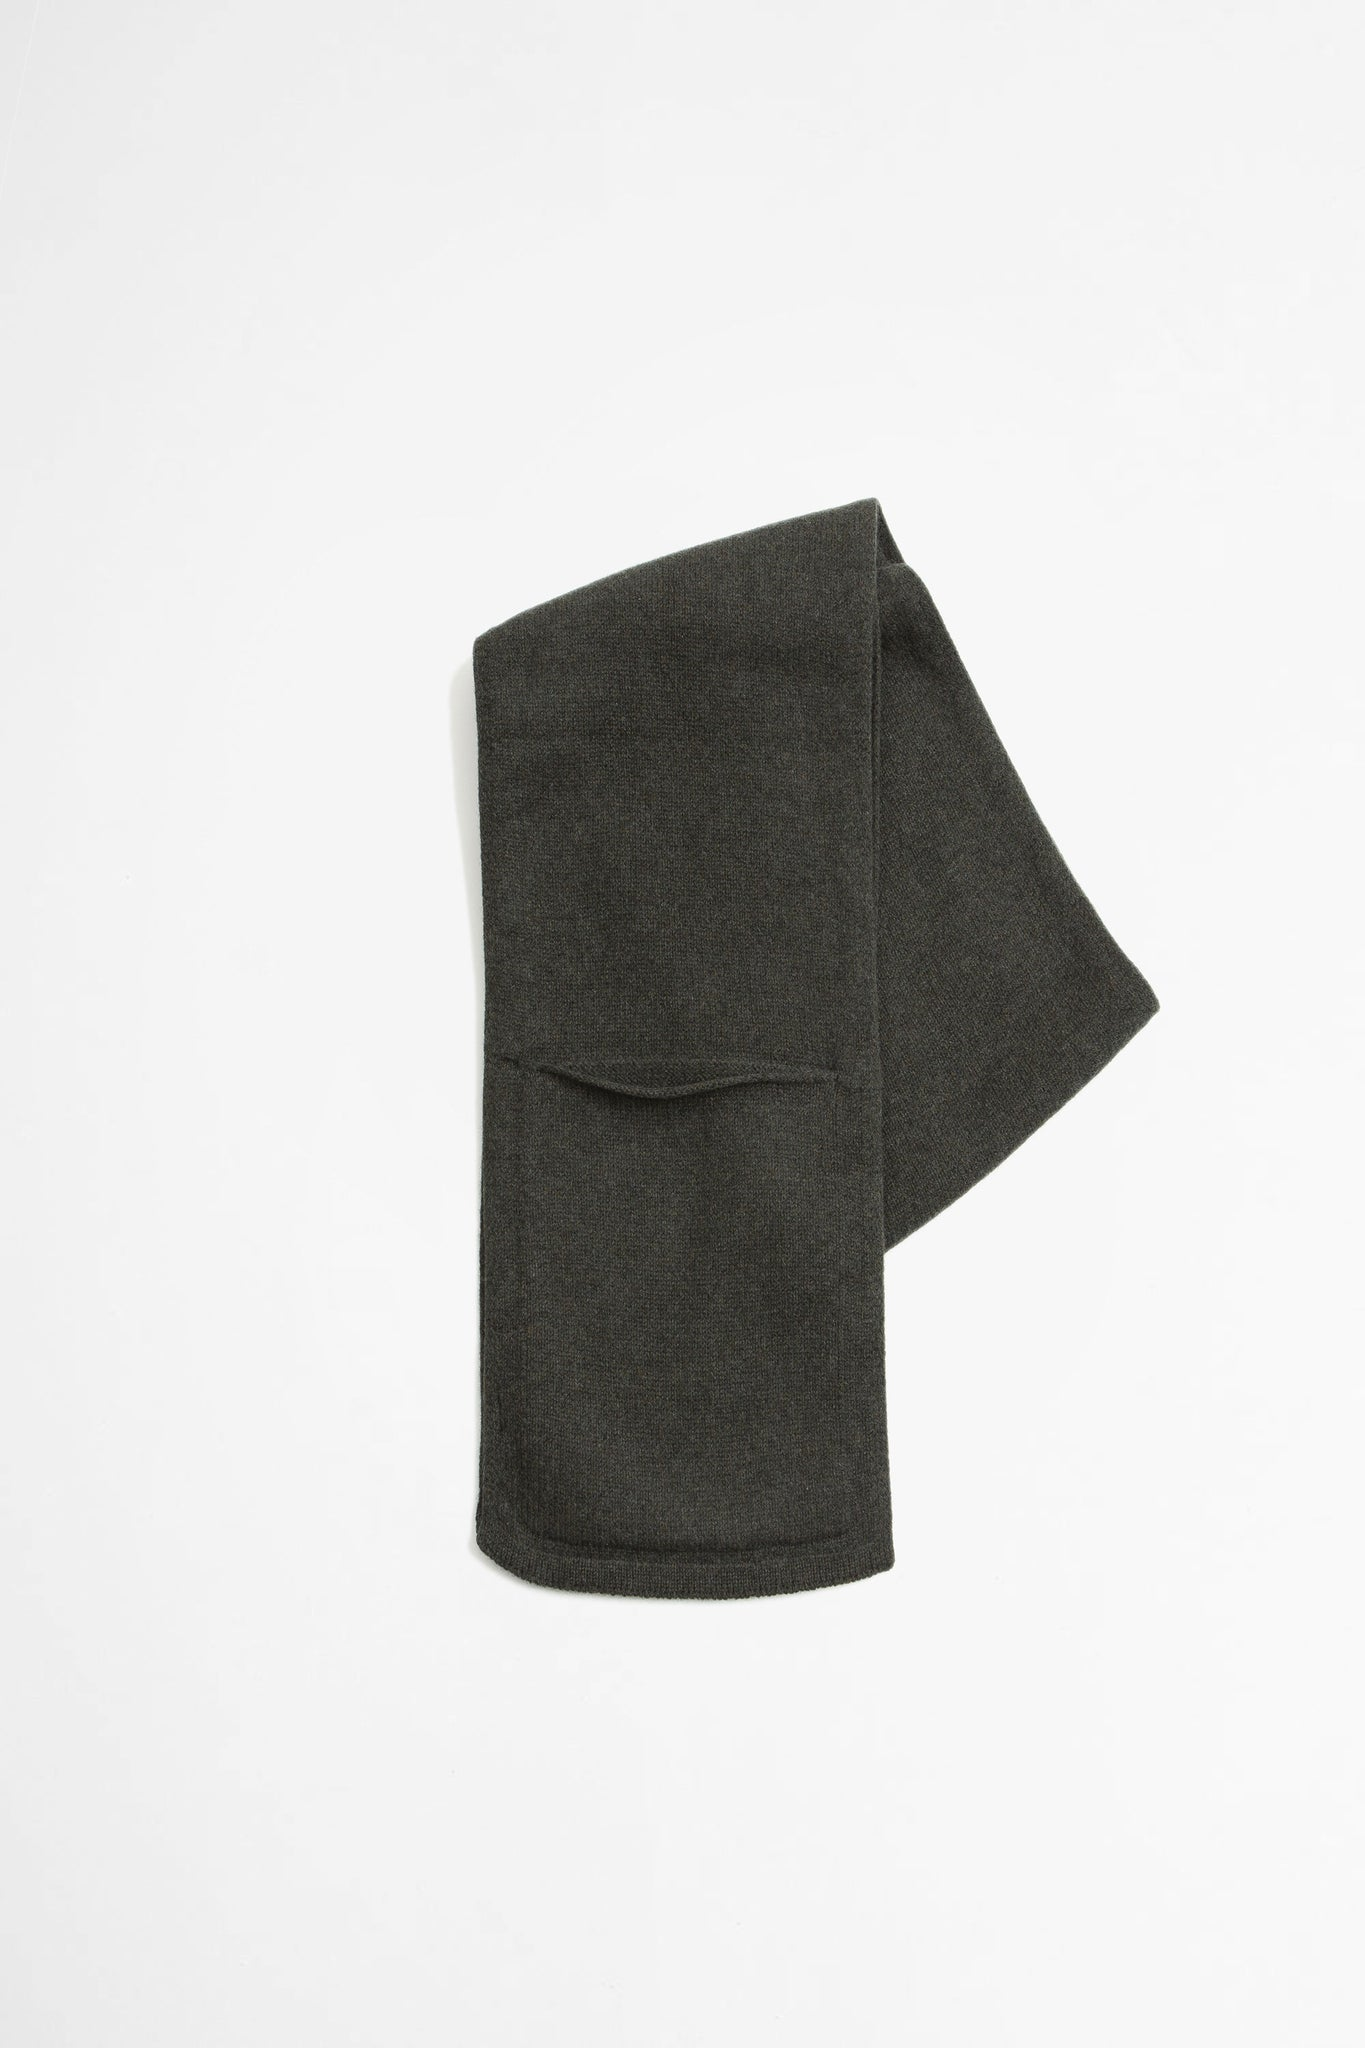 Pocket scarf lambswool khaki